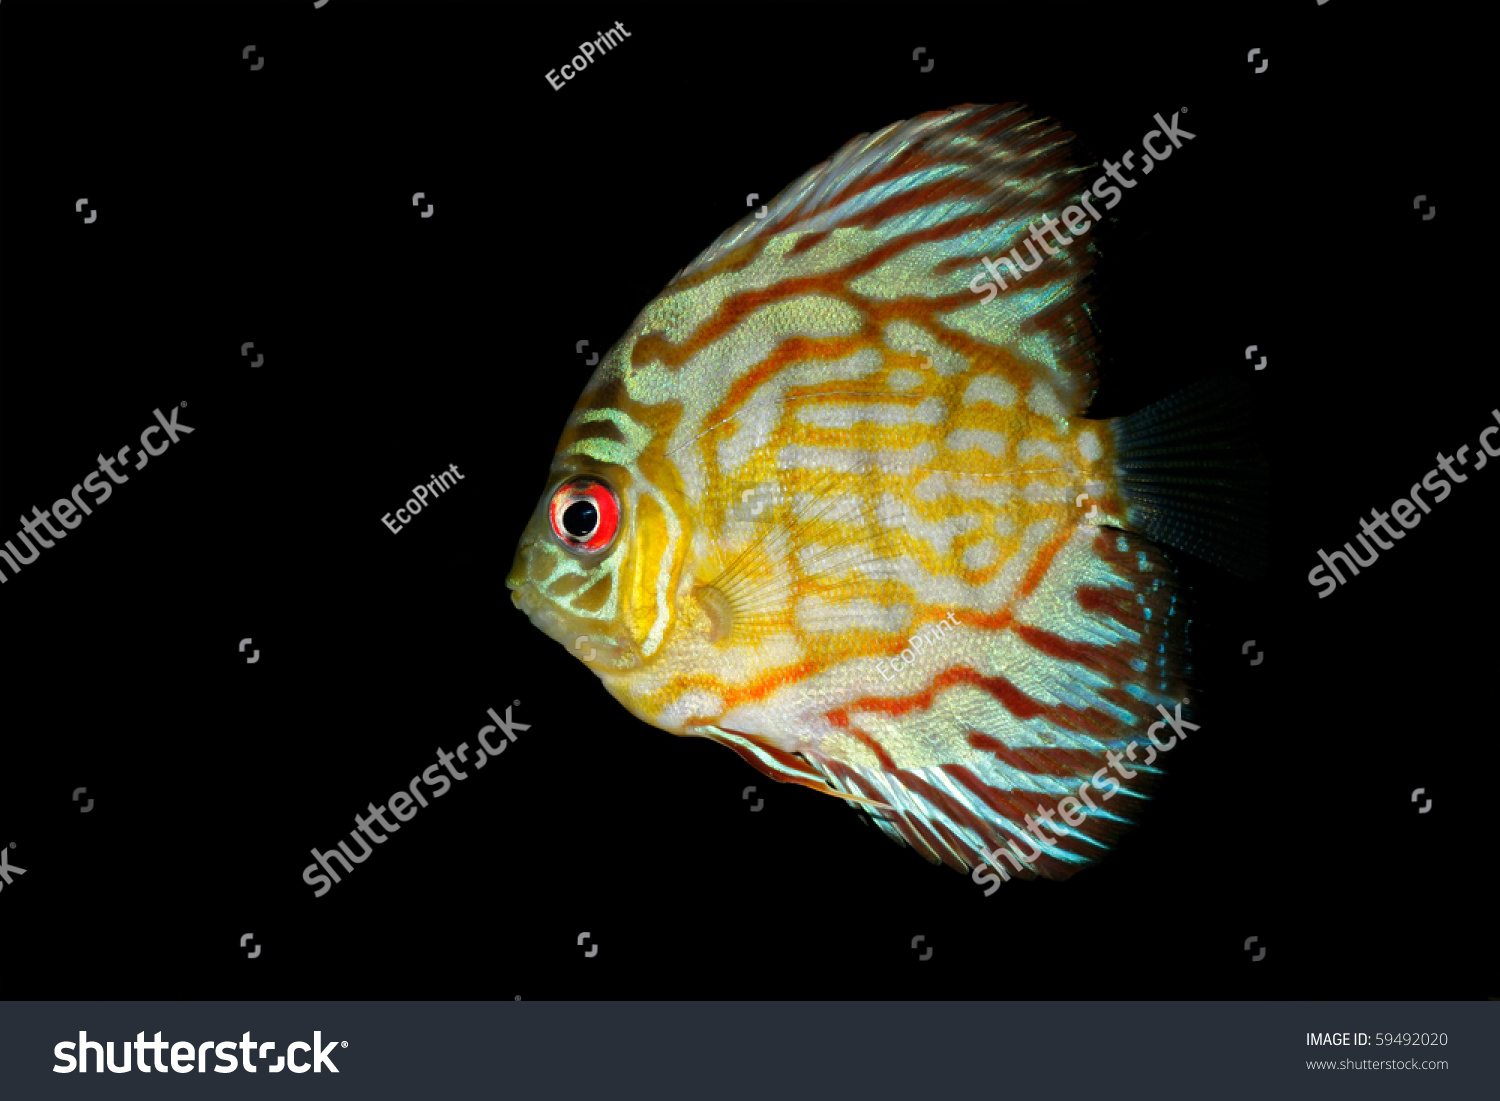 Underwater View Of A Colorful Blue Discus Fish Symphysodon Aequifasciata Stock Photo 59492020